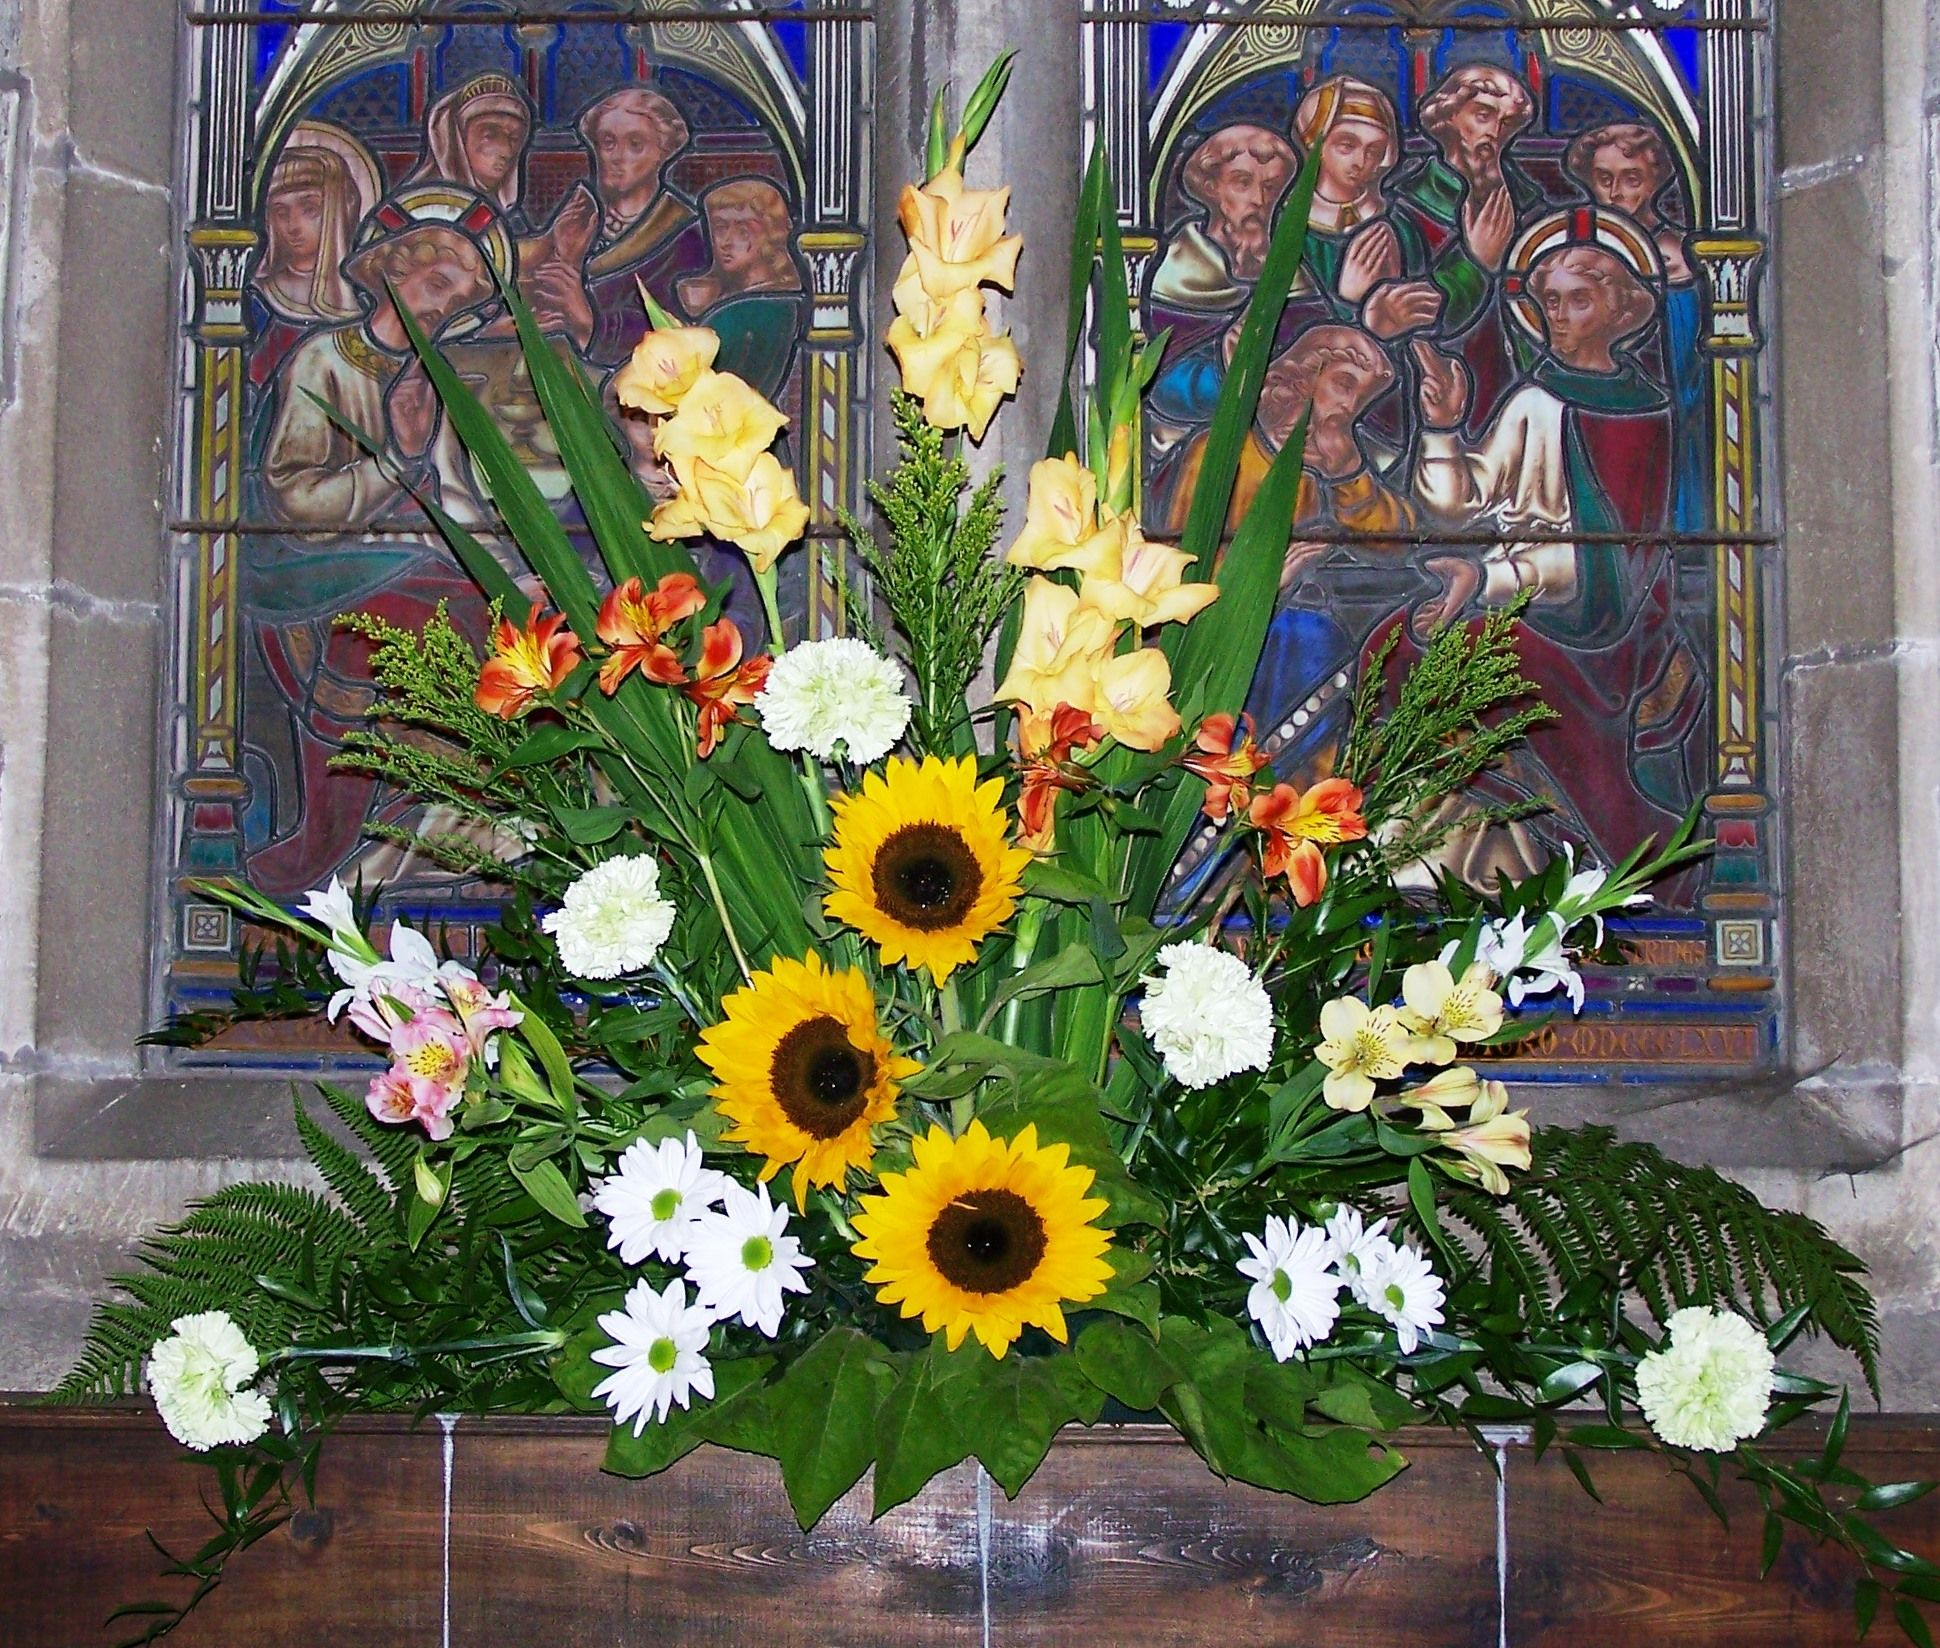 St Giles, Ludford, funeral in August 2012 window